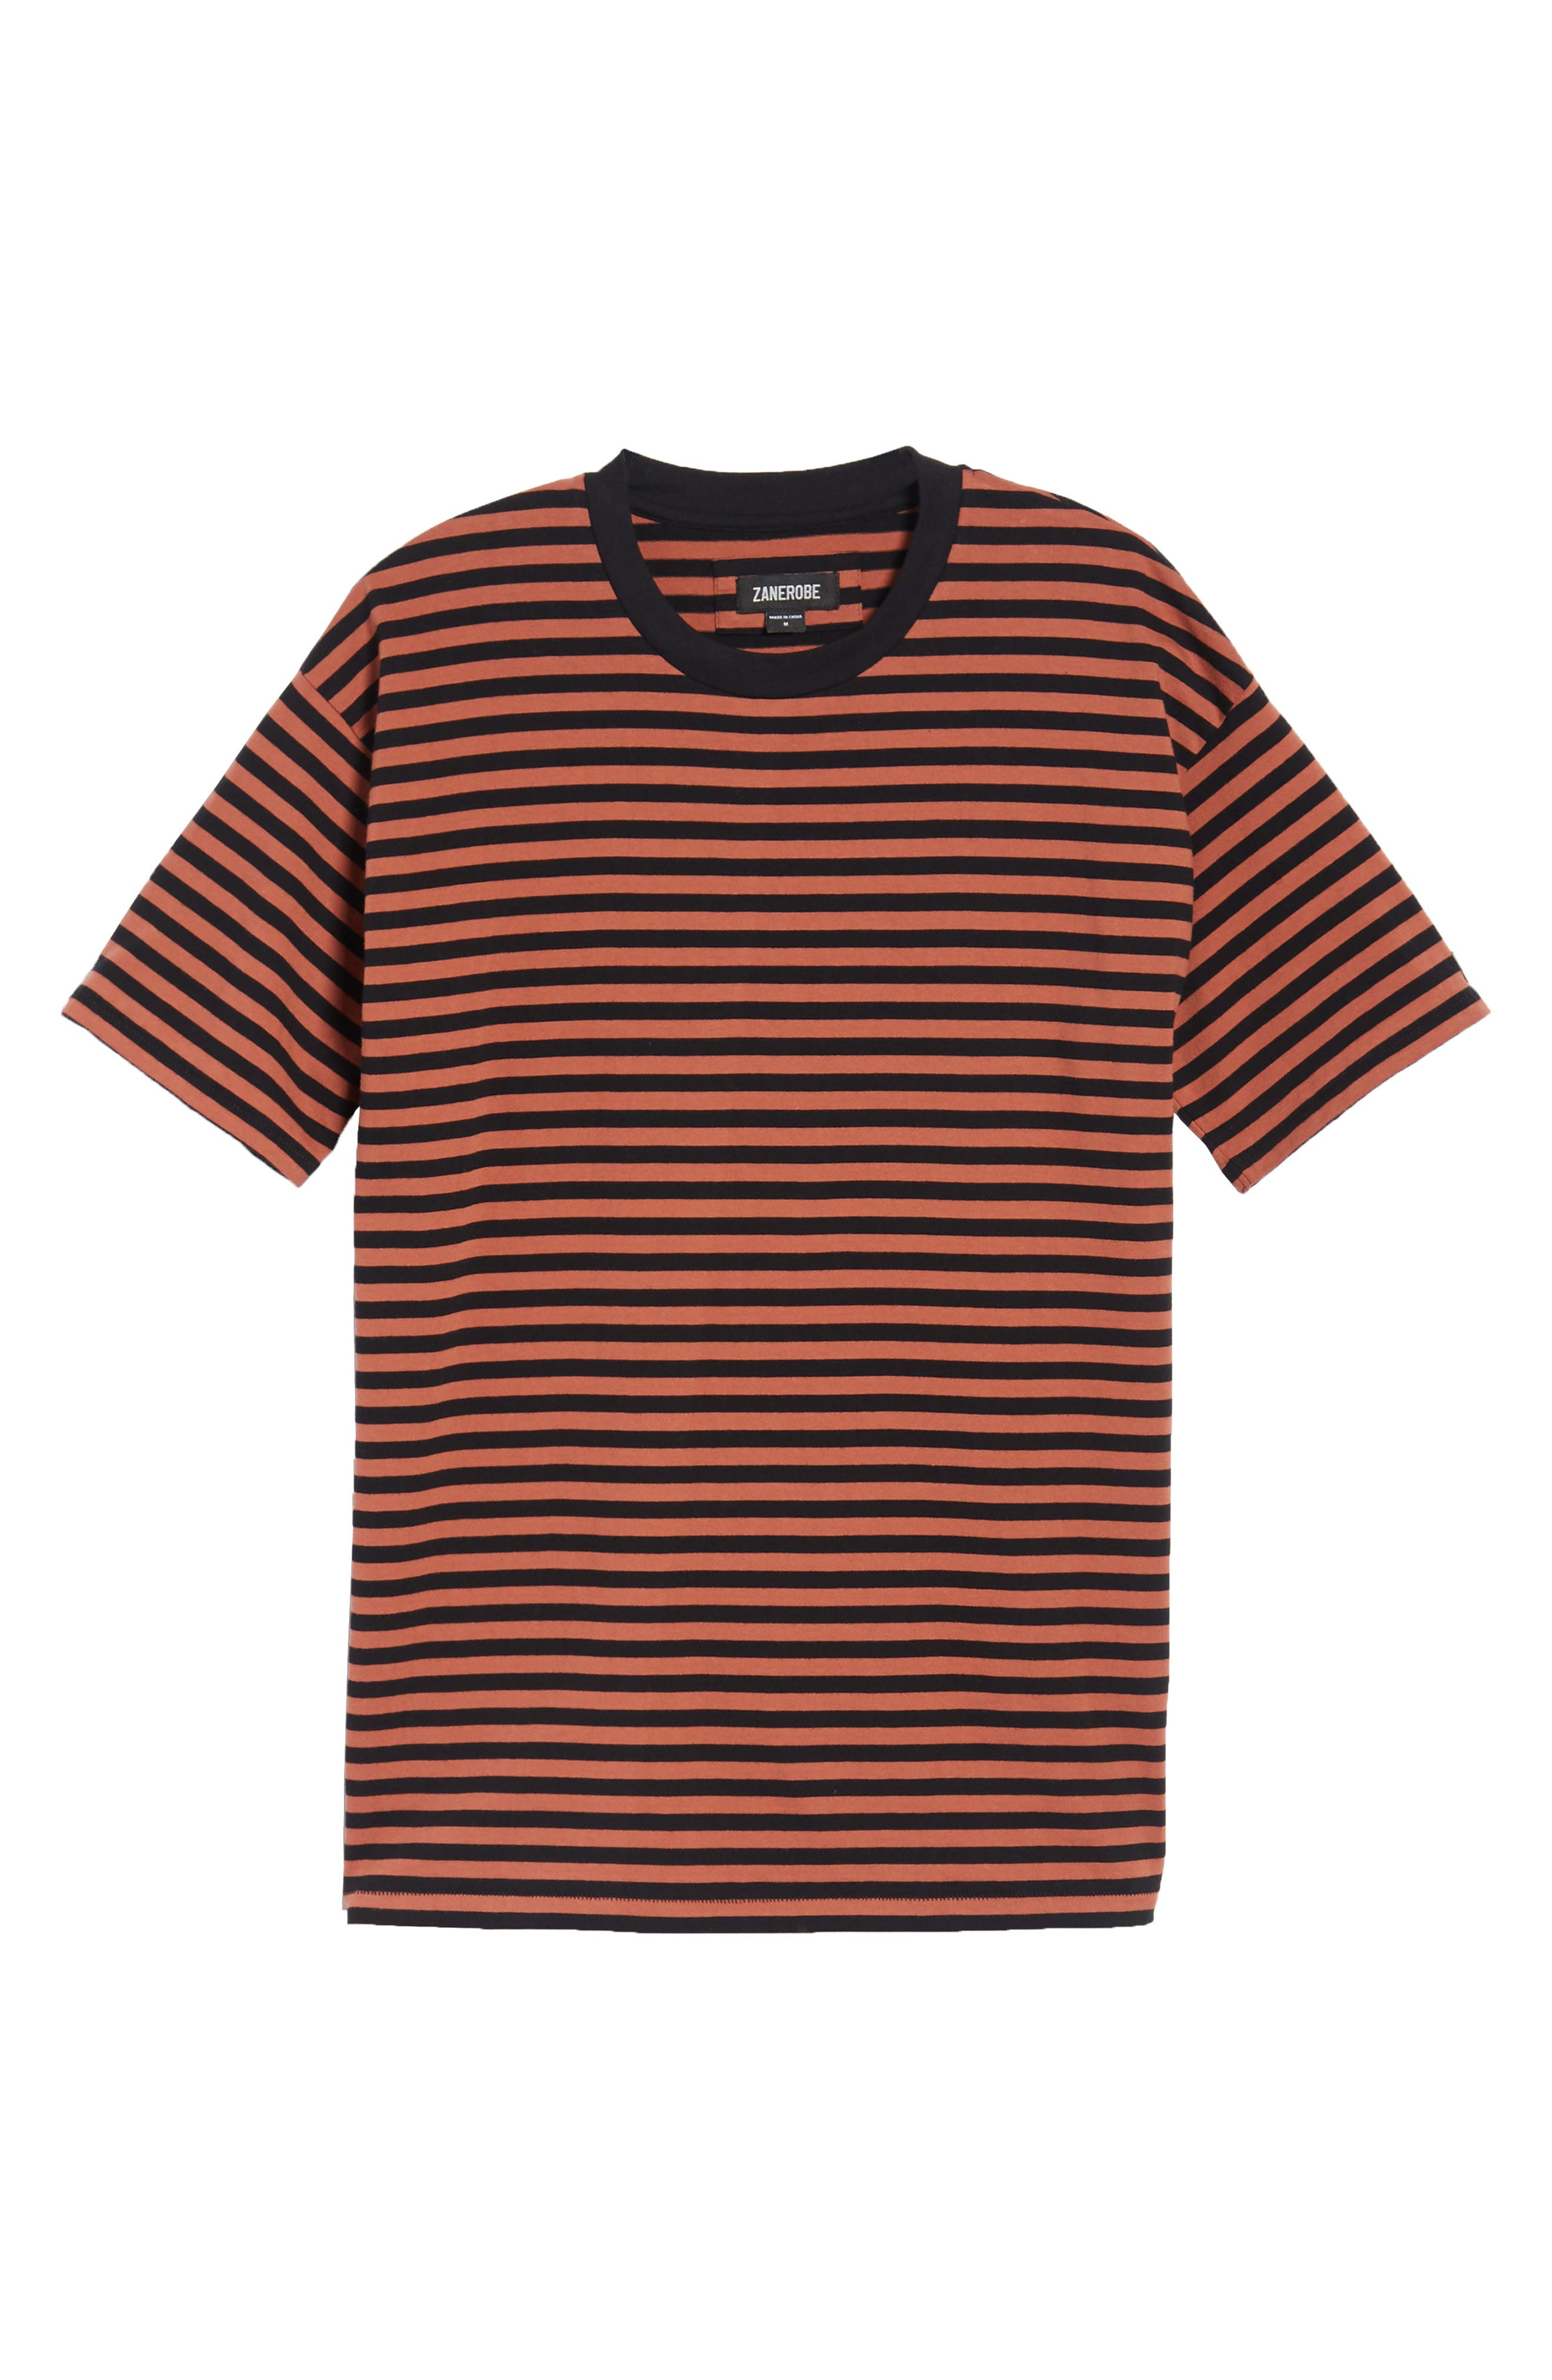 ZABEROBE Stripe Box T-Shirt,                             Alternate thumbnail 6, color,                             BRONZE/ BLACK